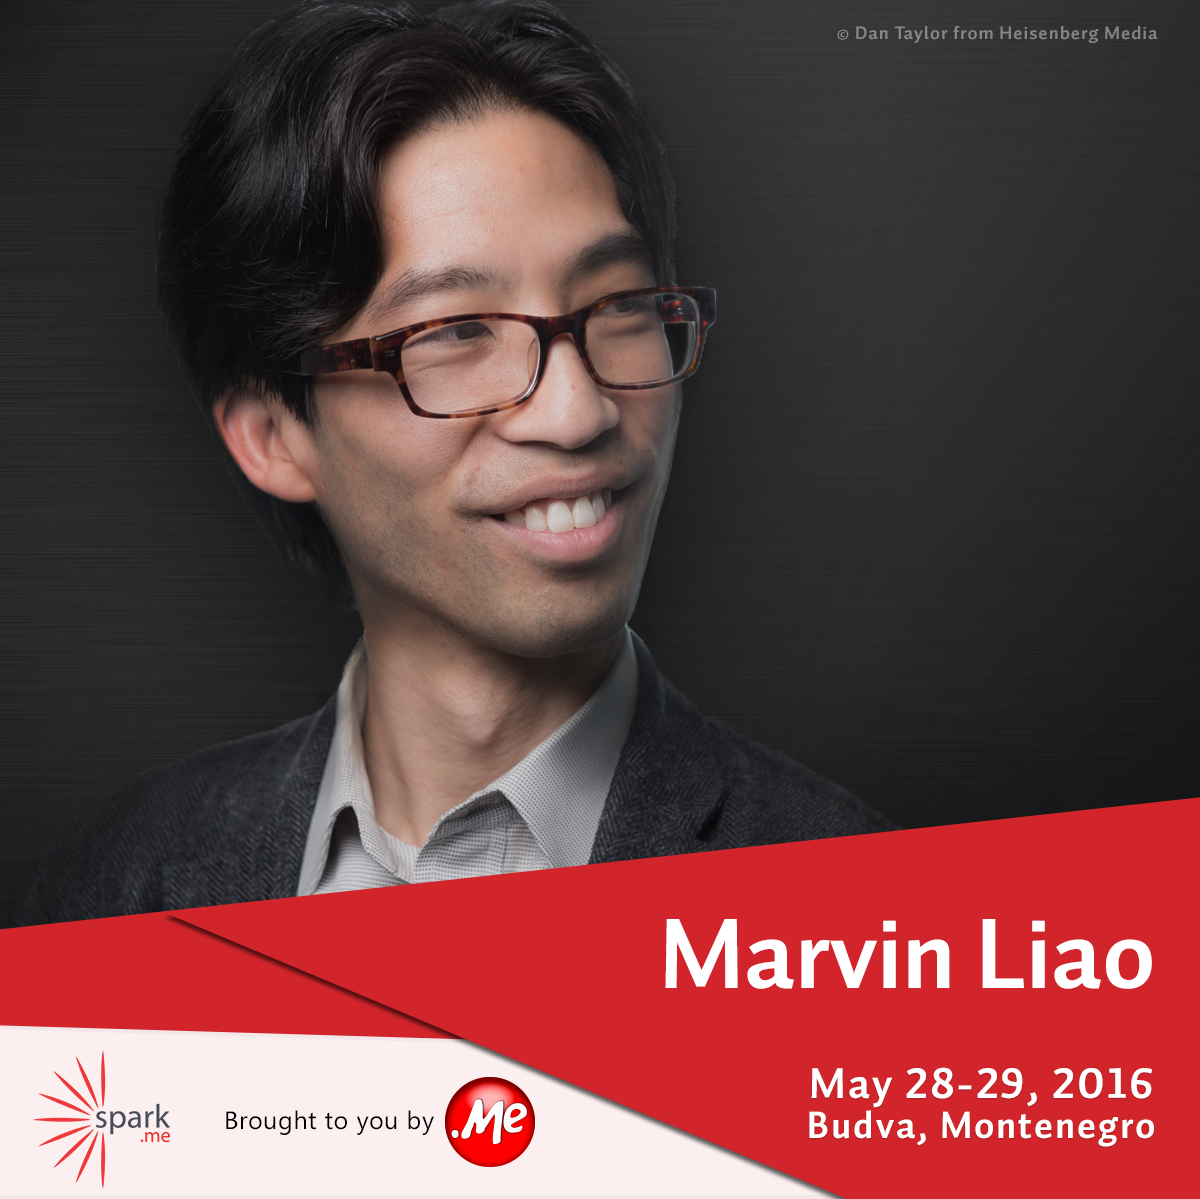 Look who's coming to #SparkMe as a speaker for the second time! The one and only @marvinliao! <3 https://t.co/xrjQkBrFwG